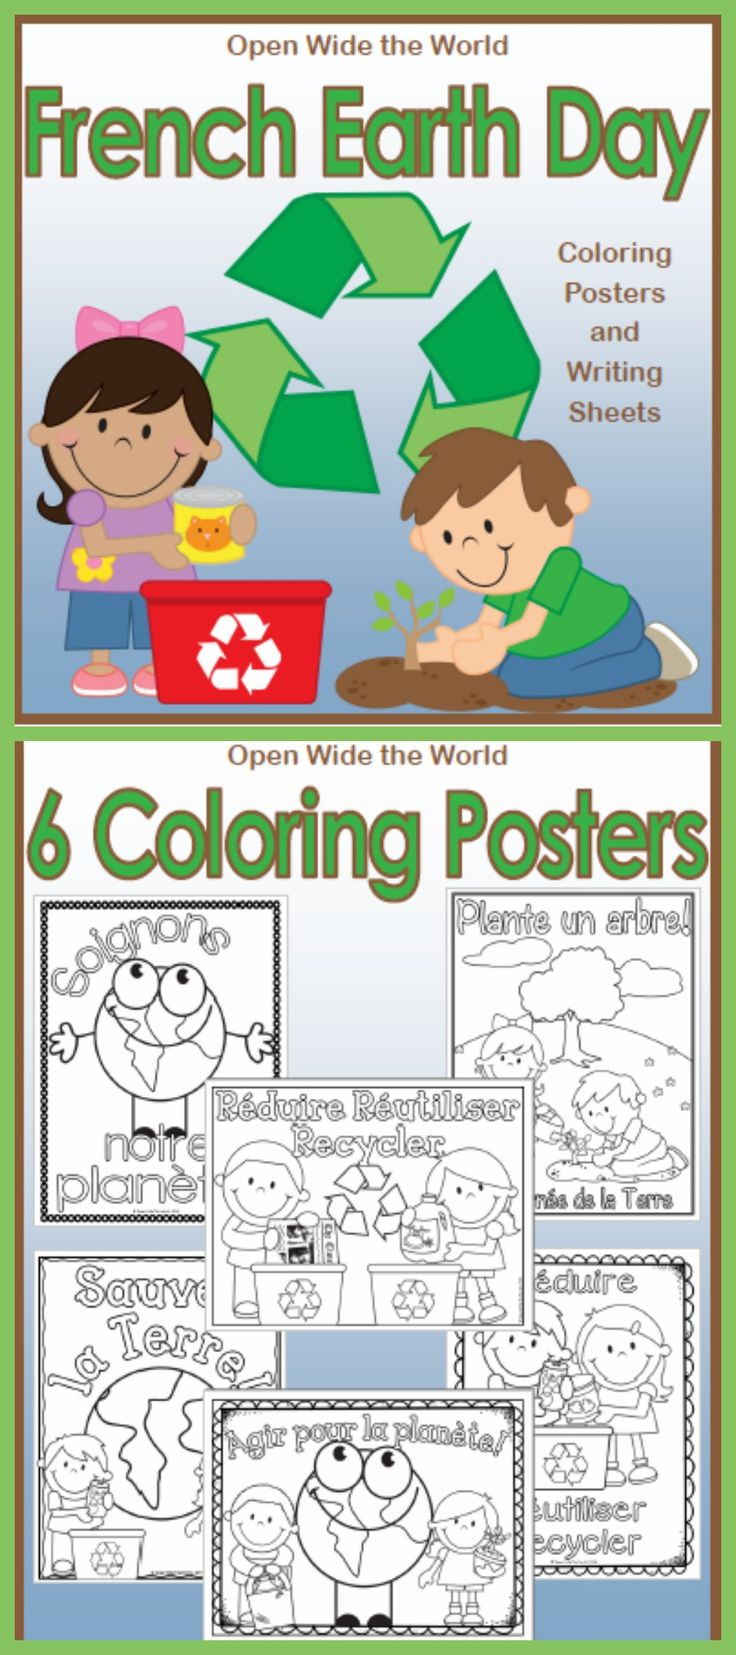 French Earth Day Coloring Posters & Writing Sheets - la journée de la Terre